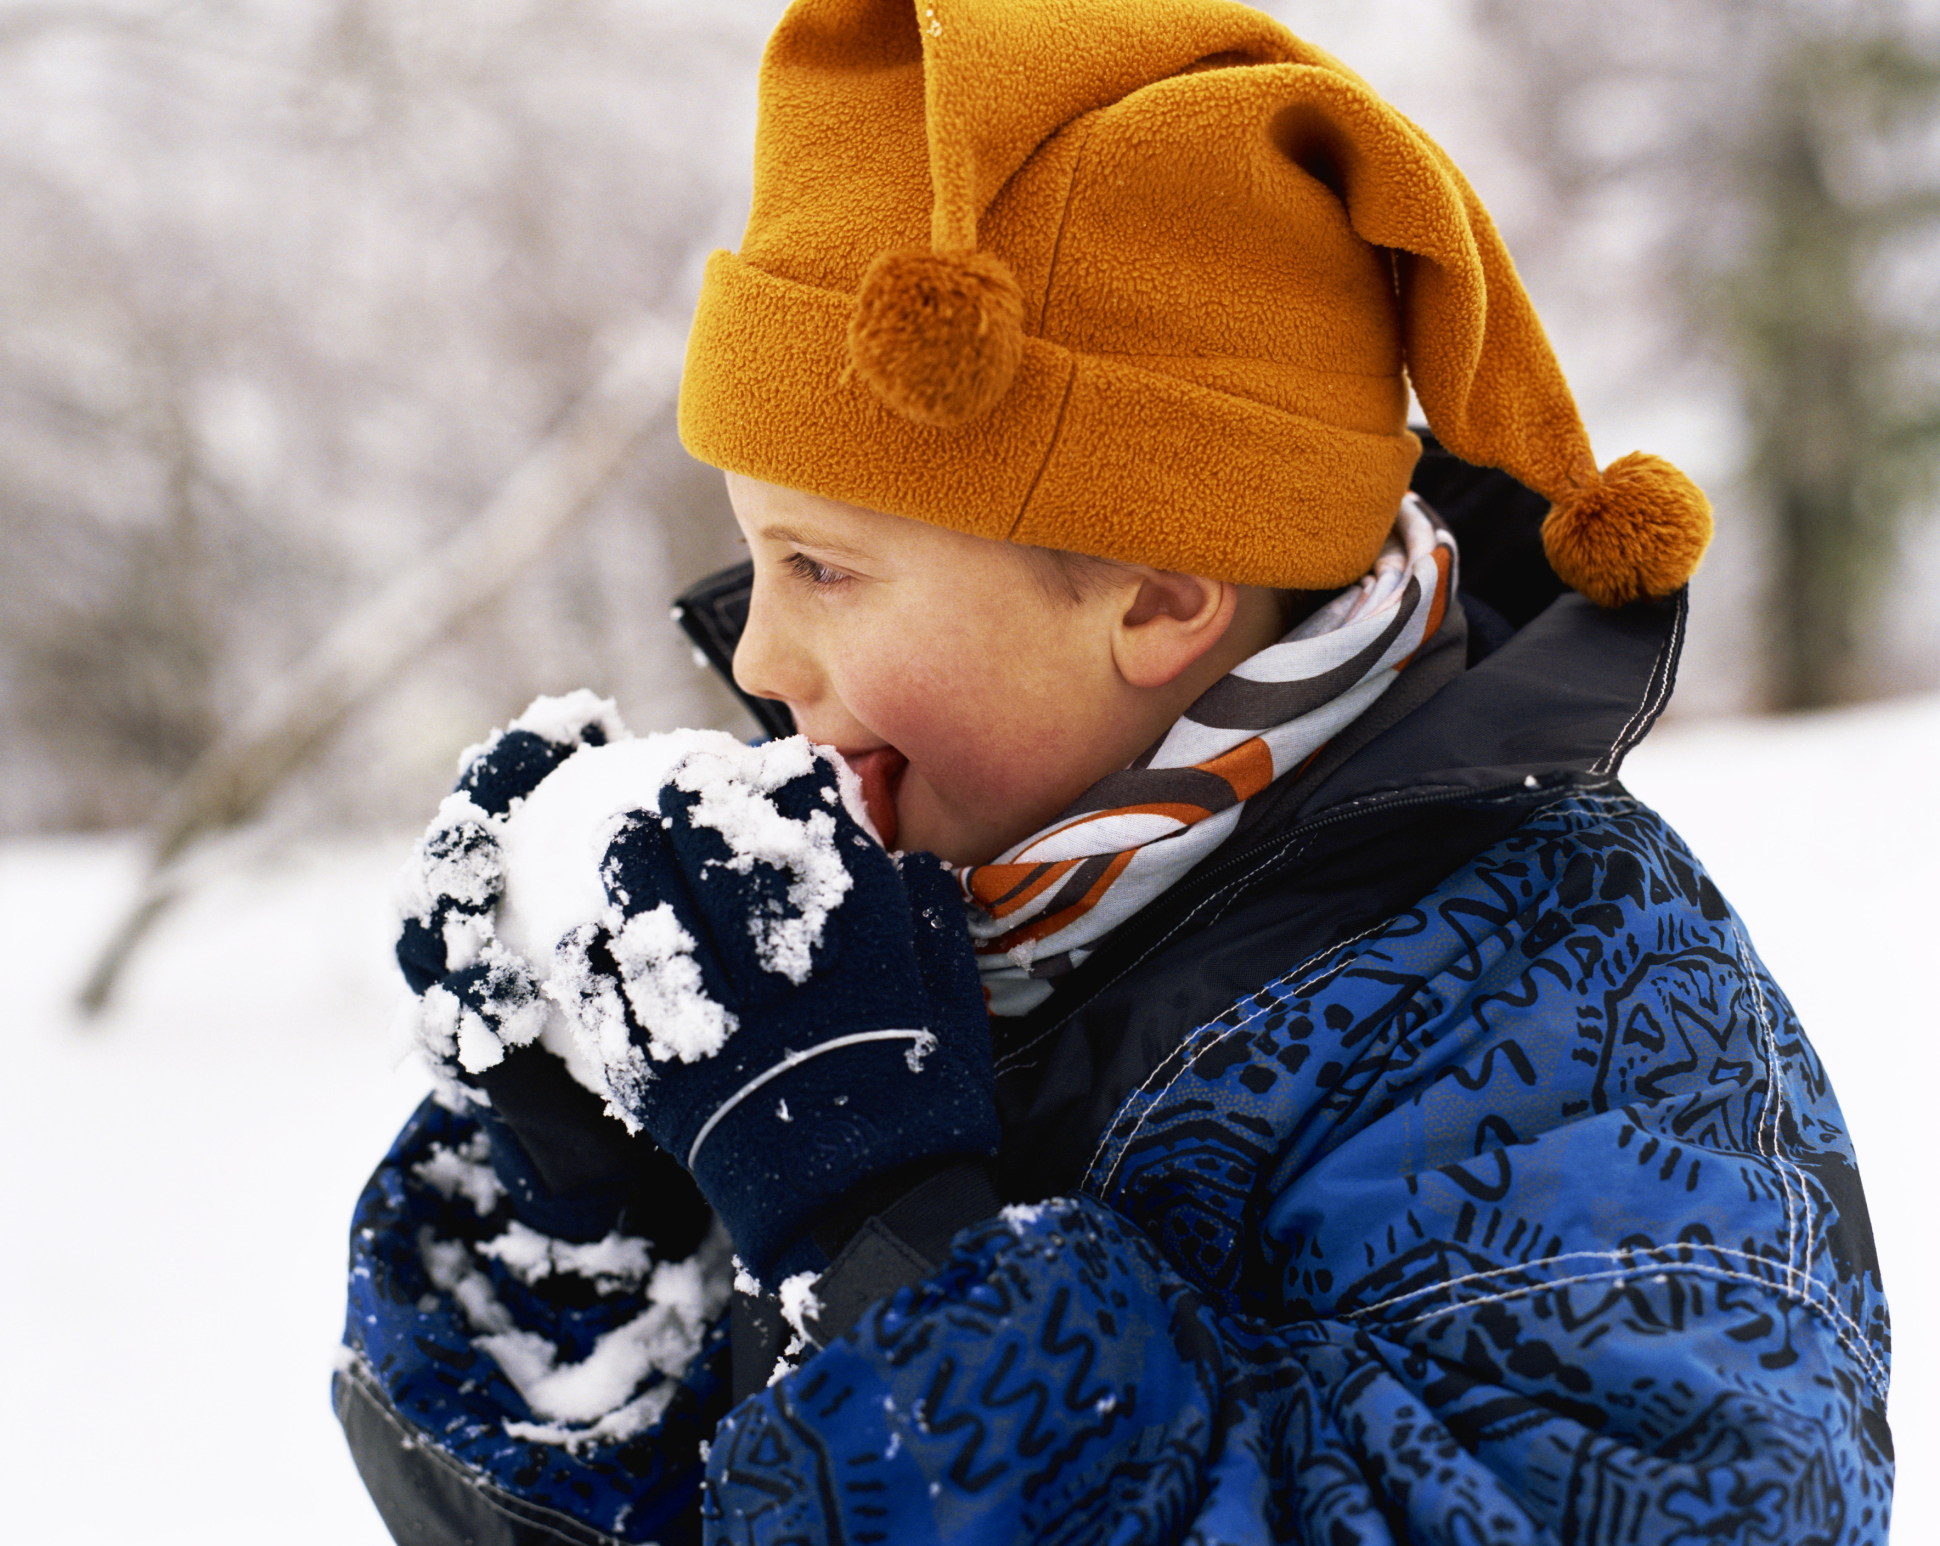 Eating snow can be hazardous to your health, study finds